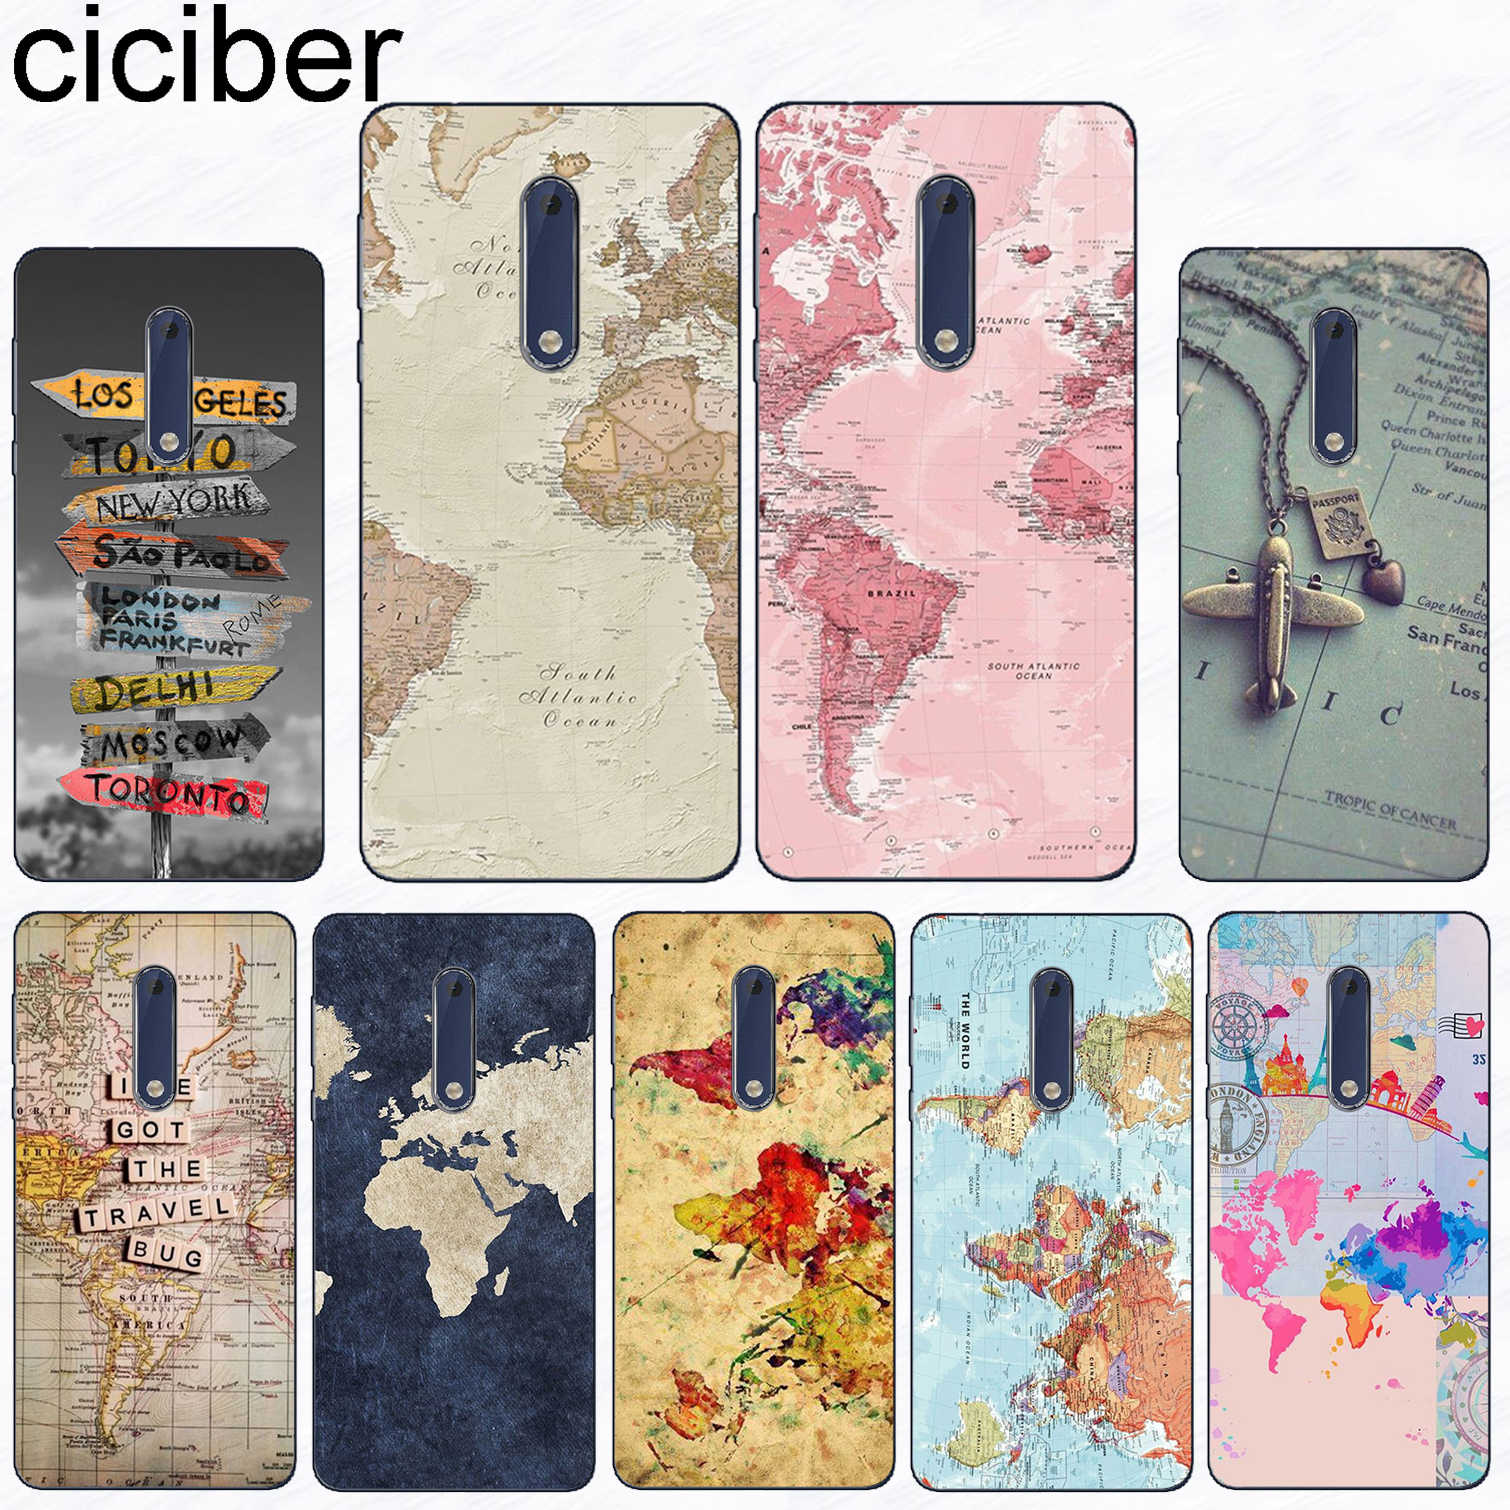 ciciber For Nokia 8 7 7.1 6 6.1 5 5.1 3 3.1 2 2.1 1 Plus Soft TPU Phone Case For Nokia X7 X6 X5 X3 World Map Travel Plans Fundas